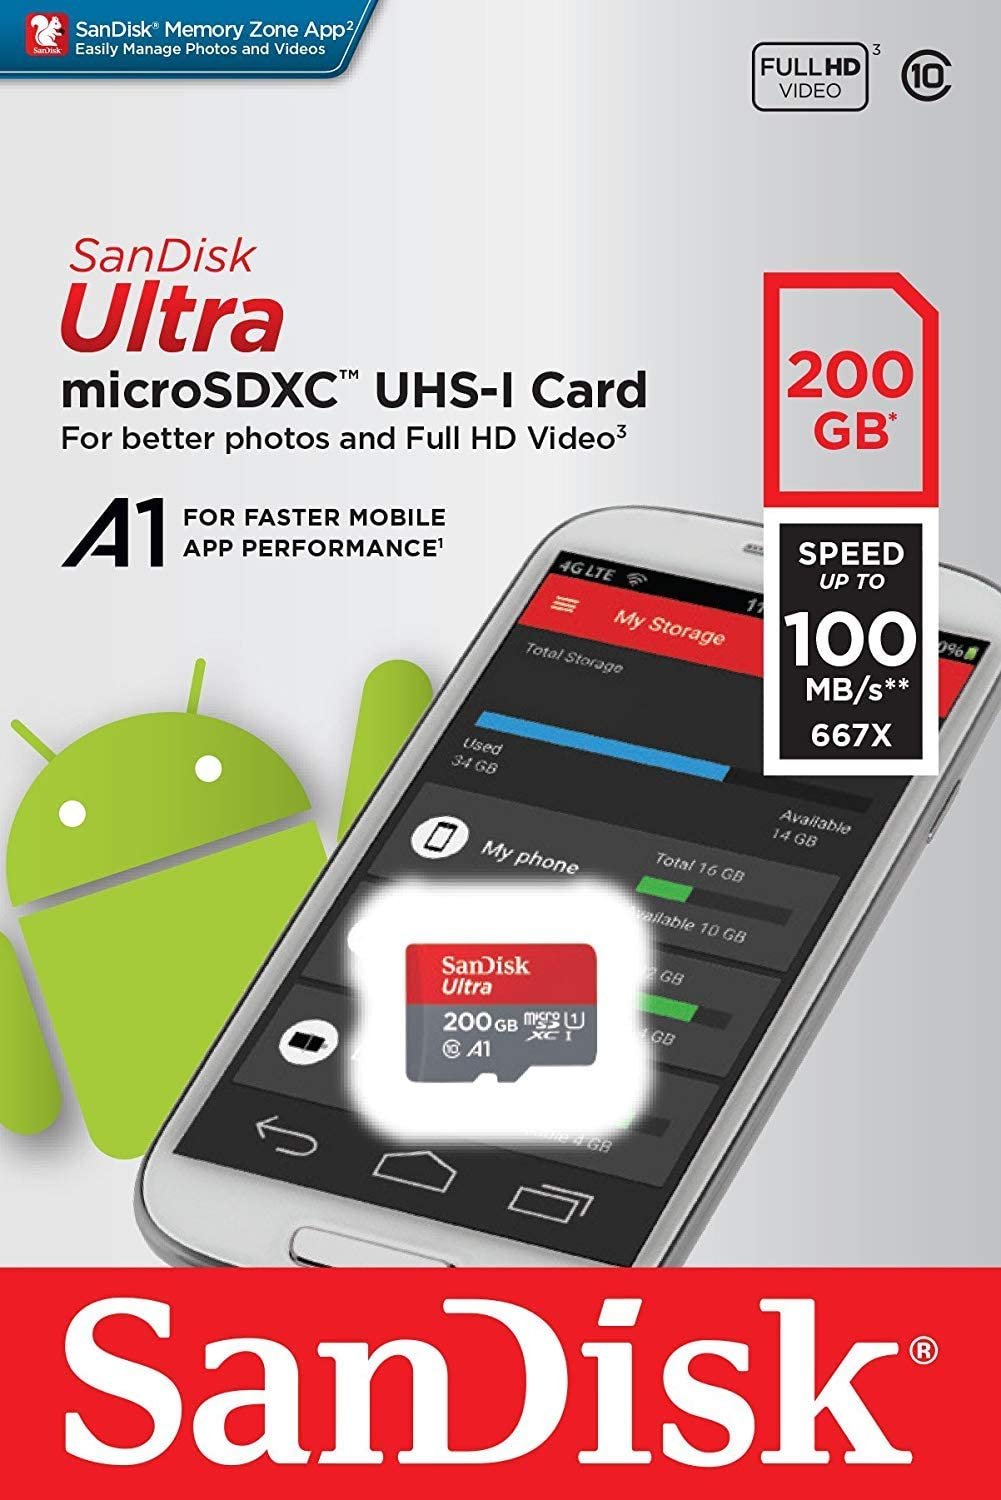 SanDisk Ultra 200GB MicroSDXC Verified for Celkon A43 by SanFlash 100MBs A1 U1 C10 Works with SanDisk